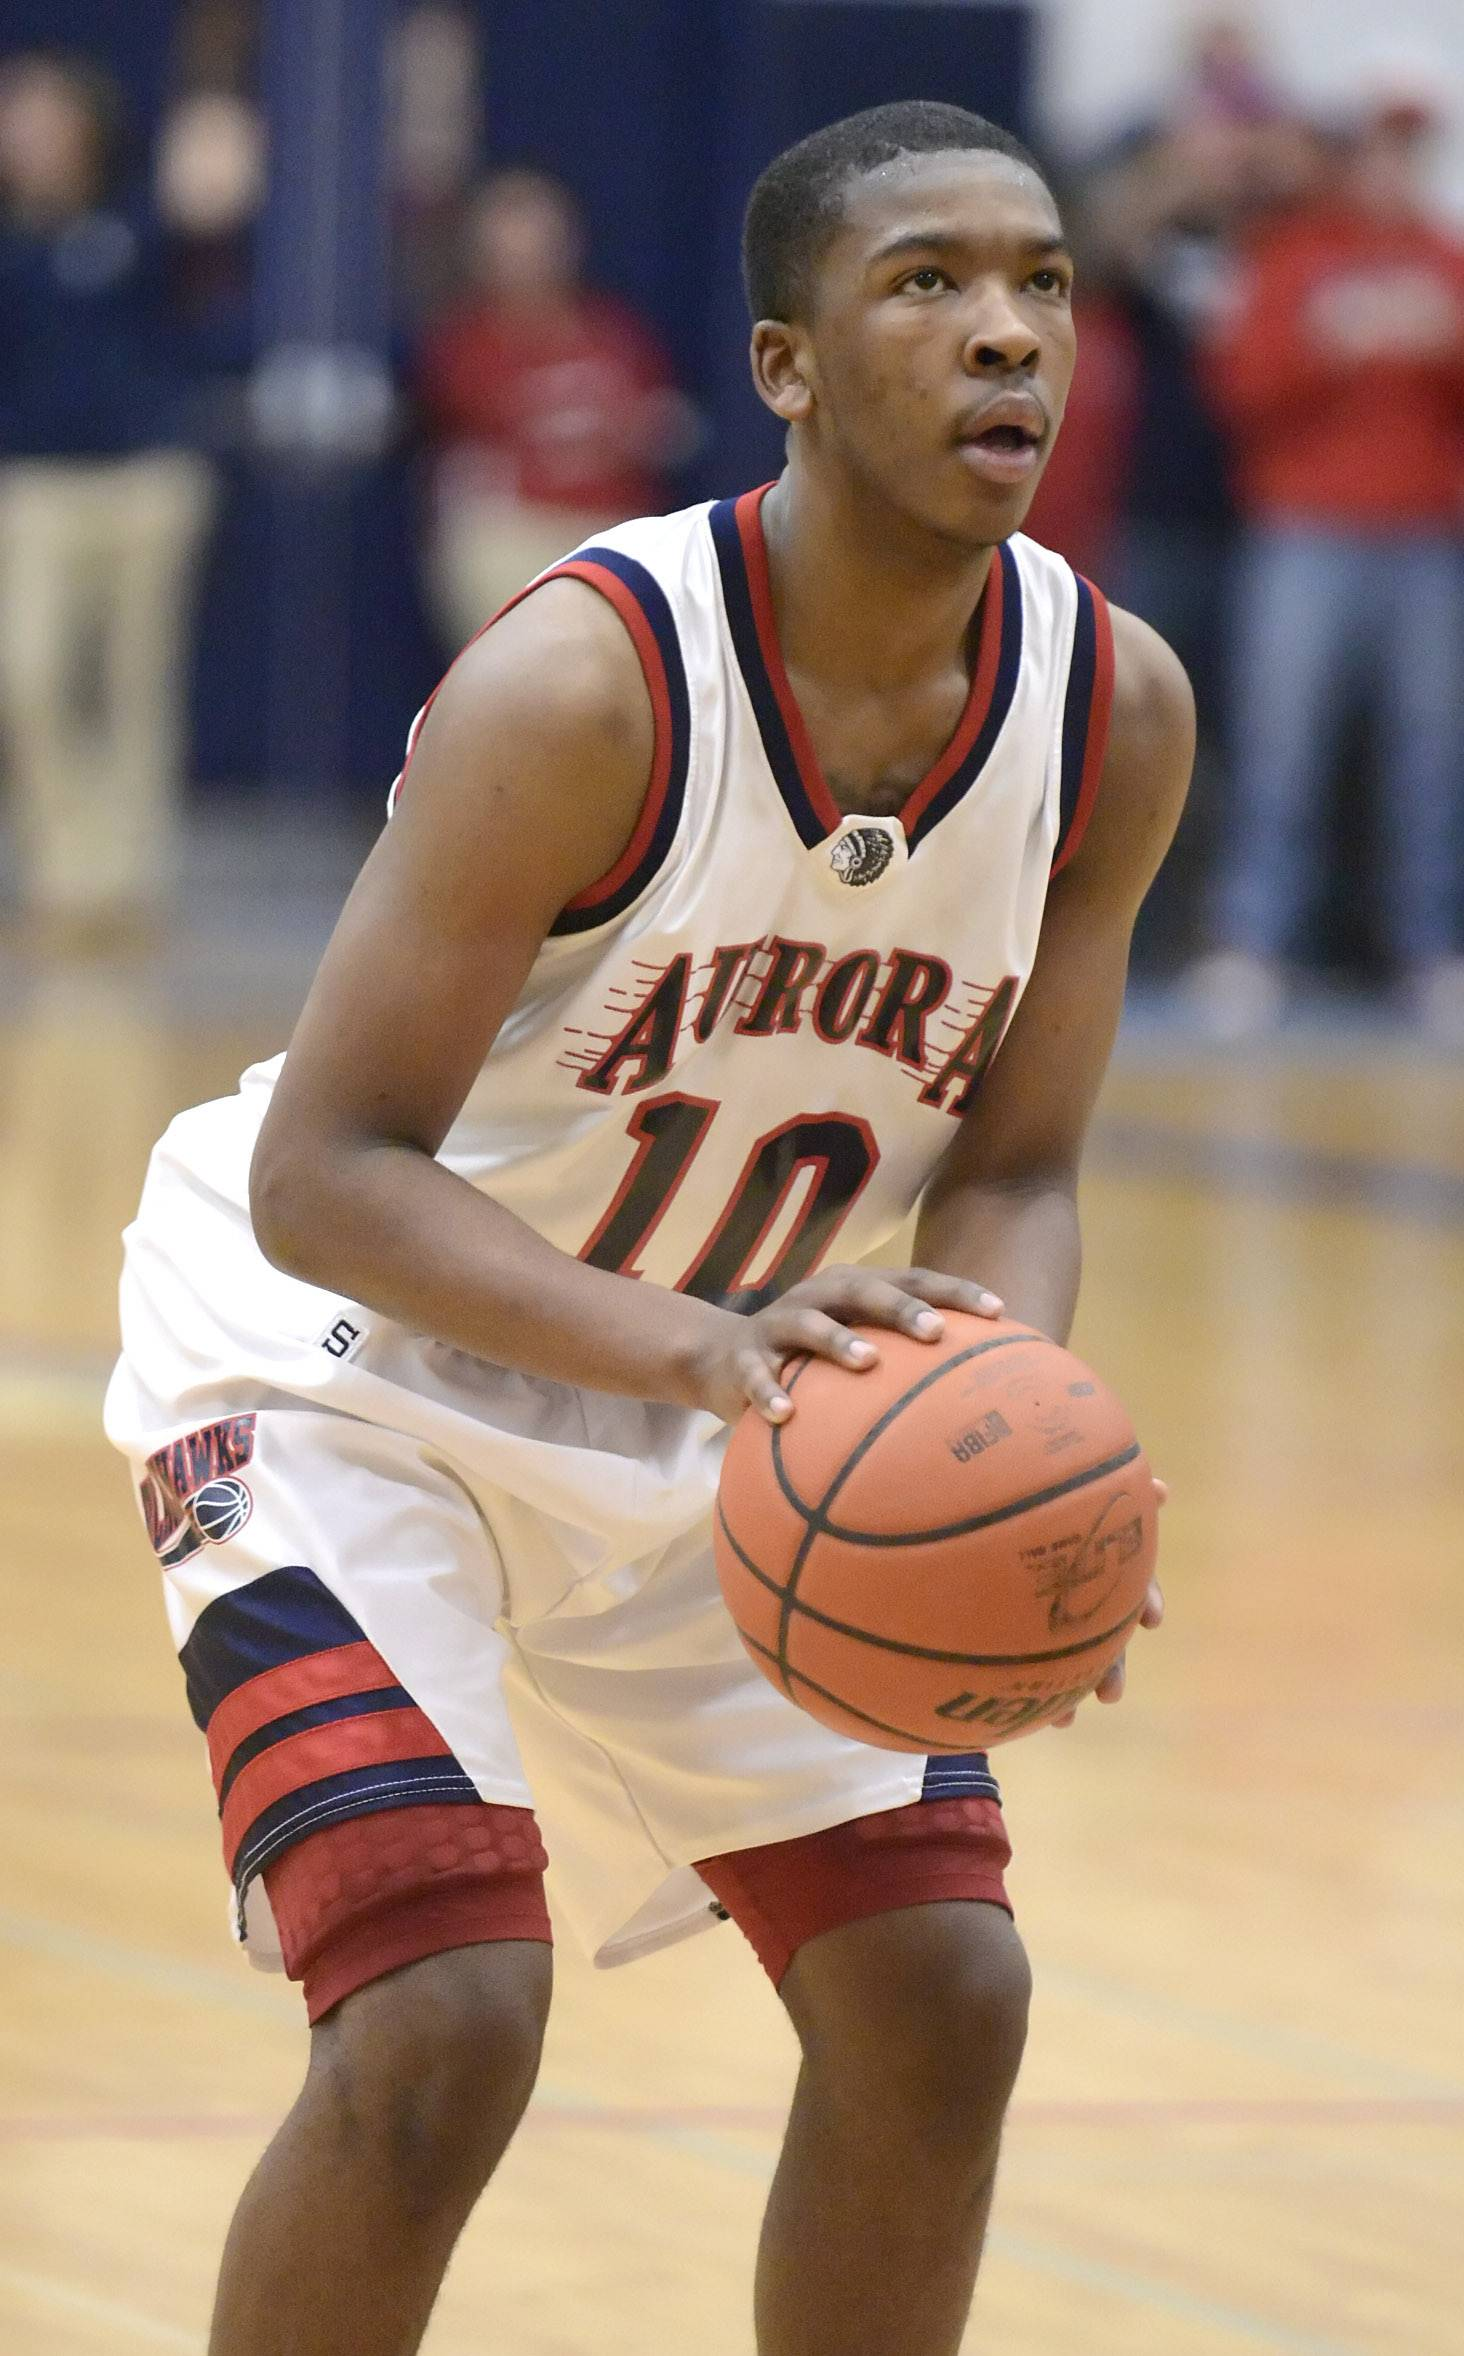 Nothing but net for West Aurora's Walker